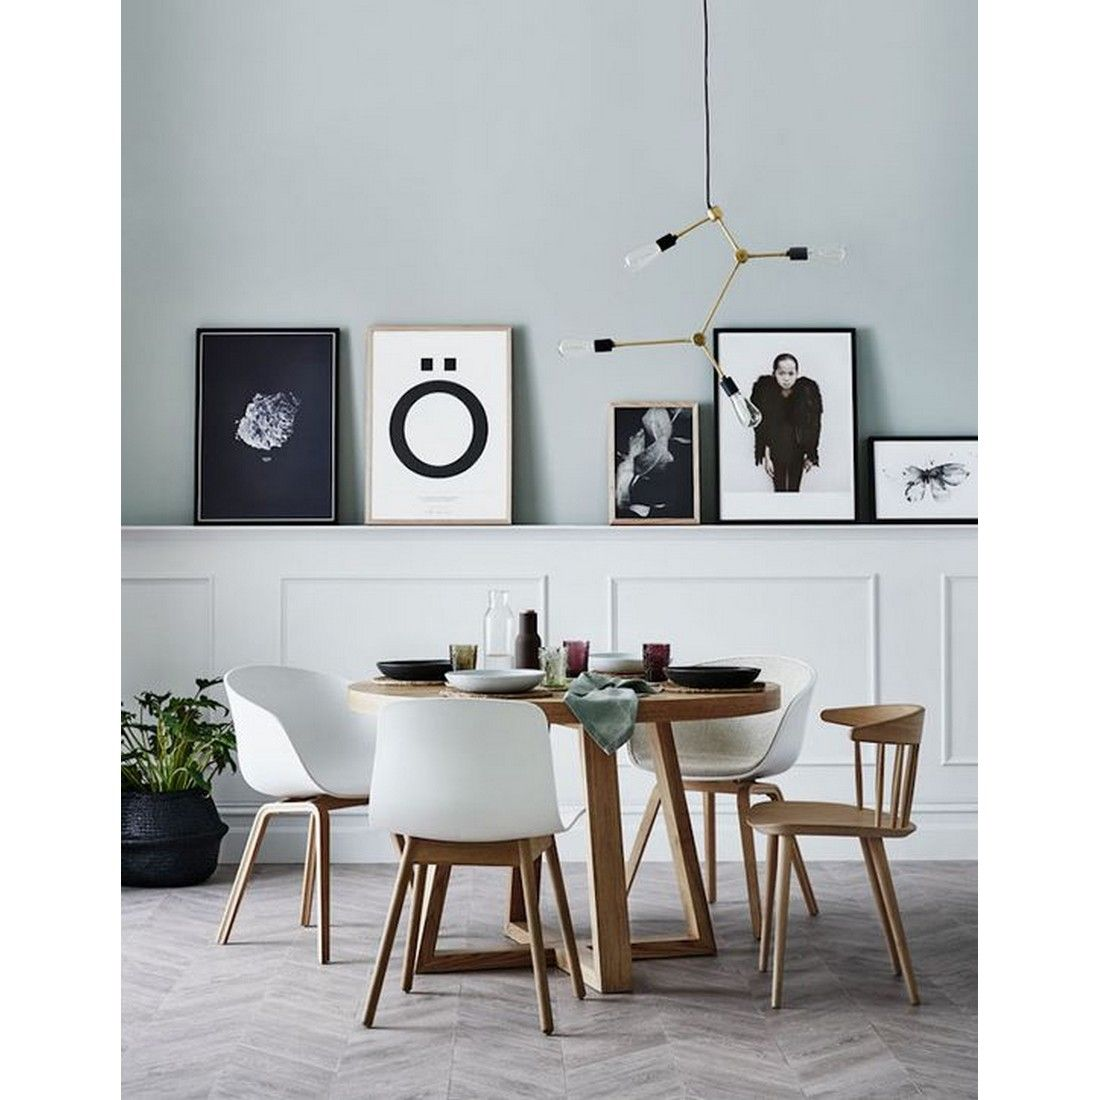 Scandinavian Dining Room Chairs: Scandinavian Dining Room With Wooden Chairs, Yay Or Nay?